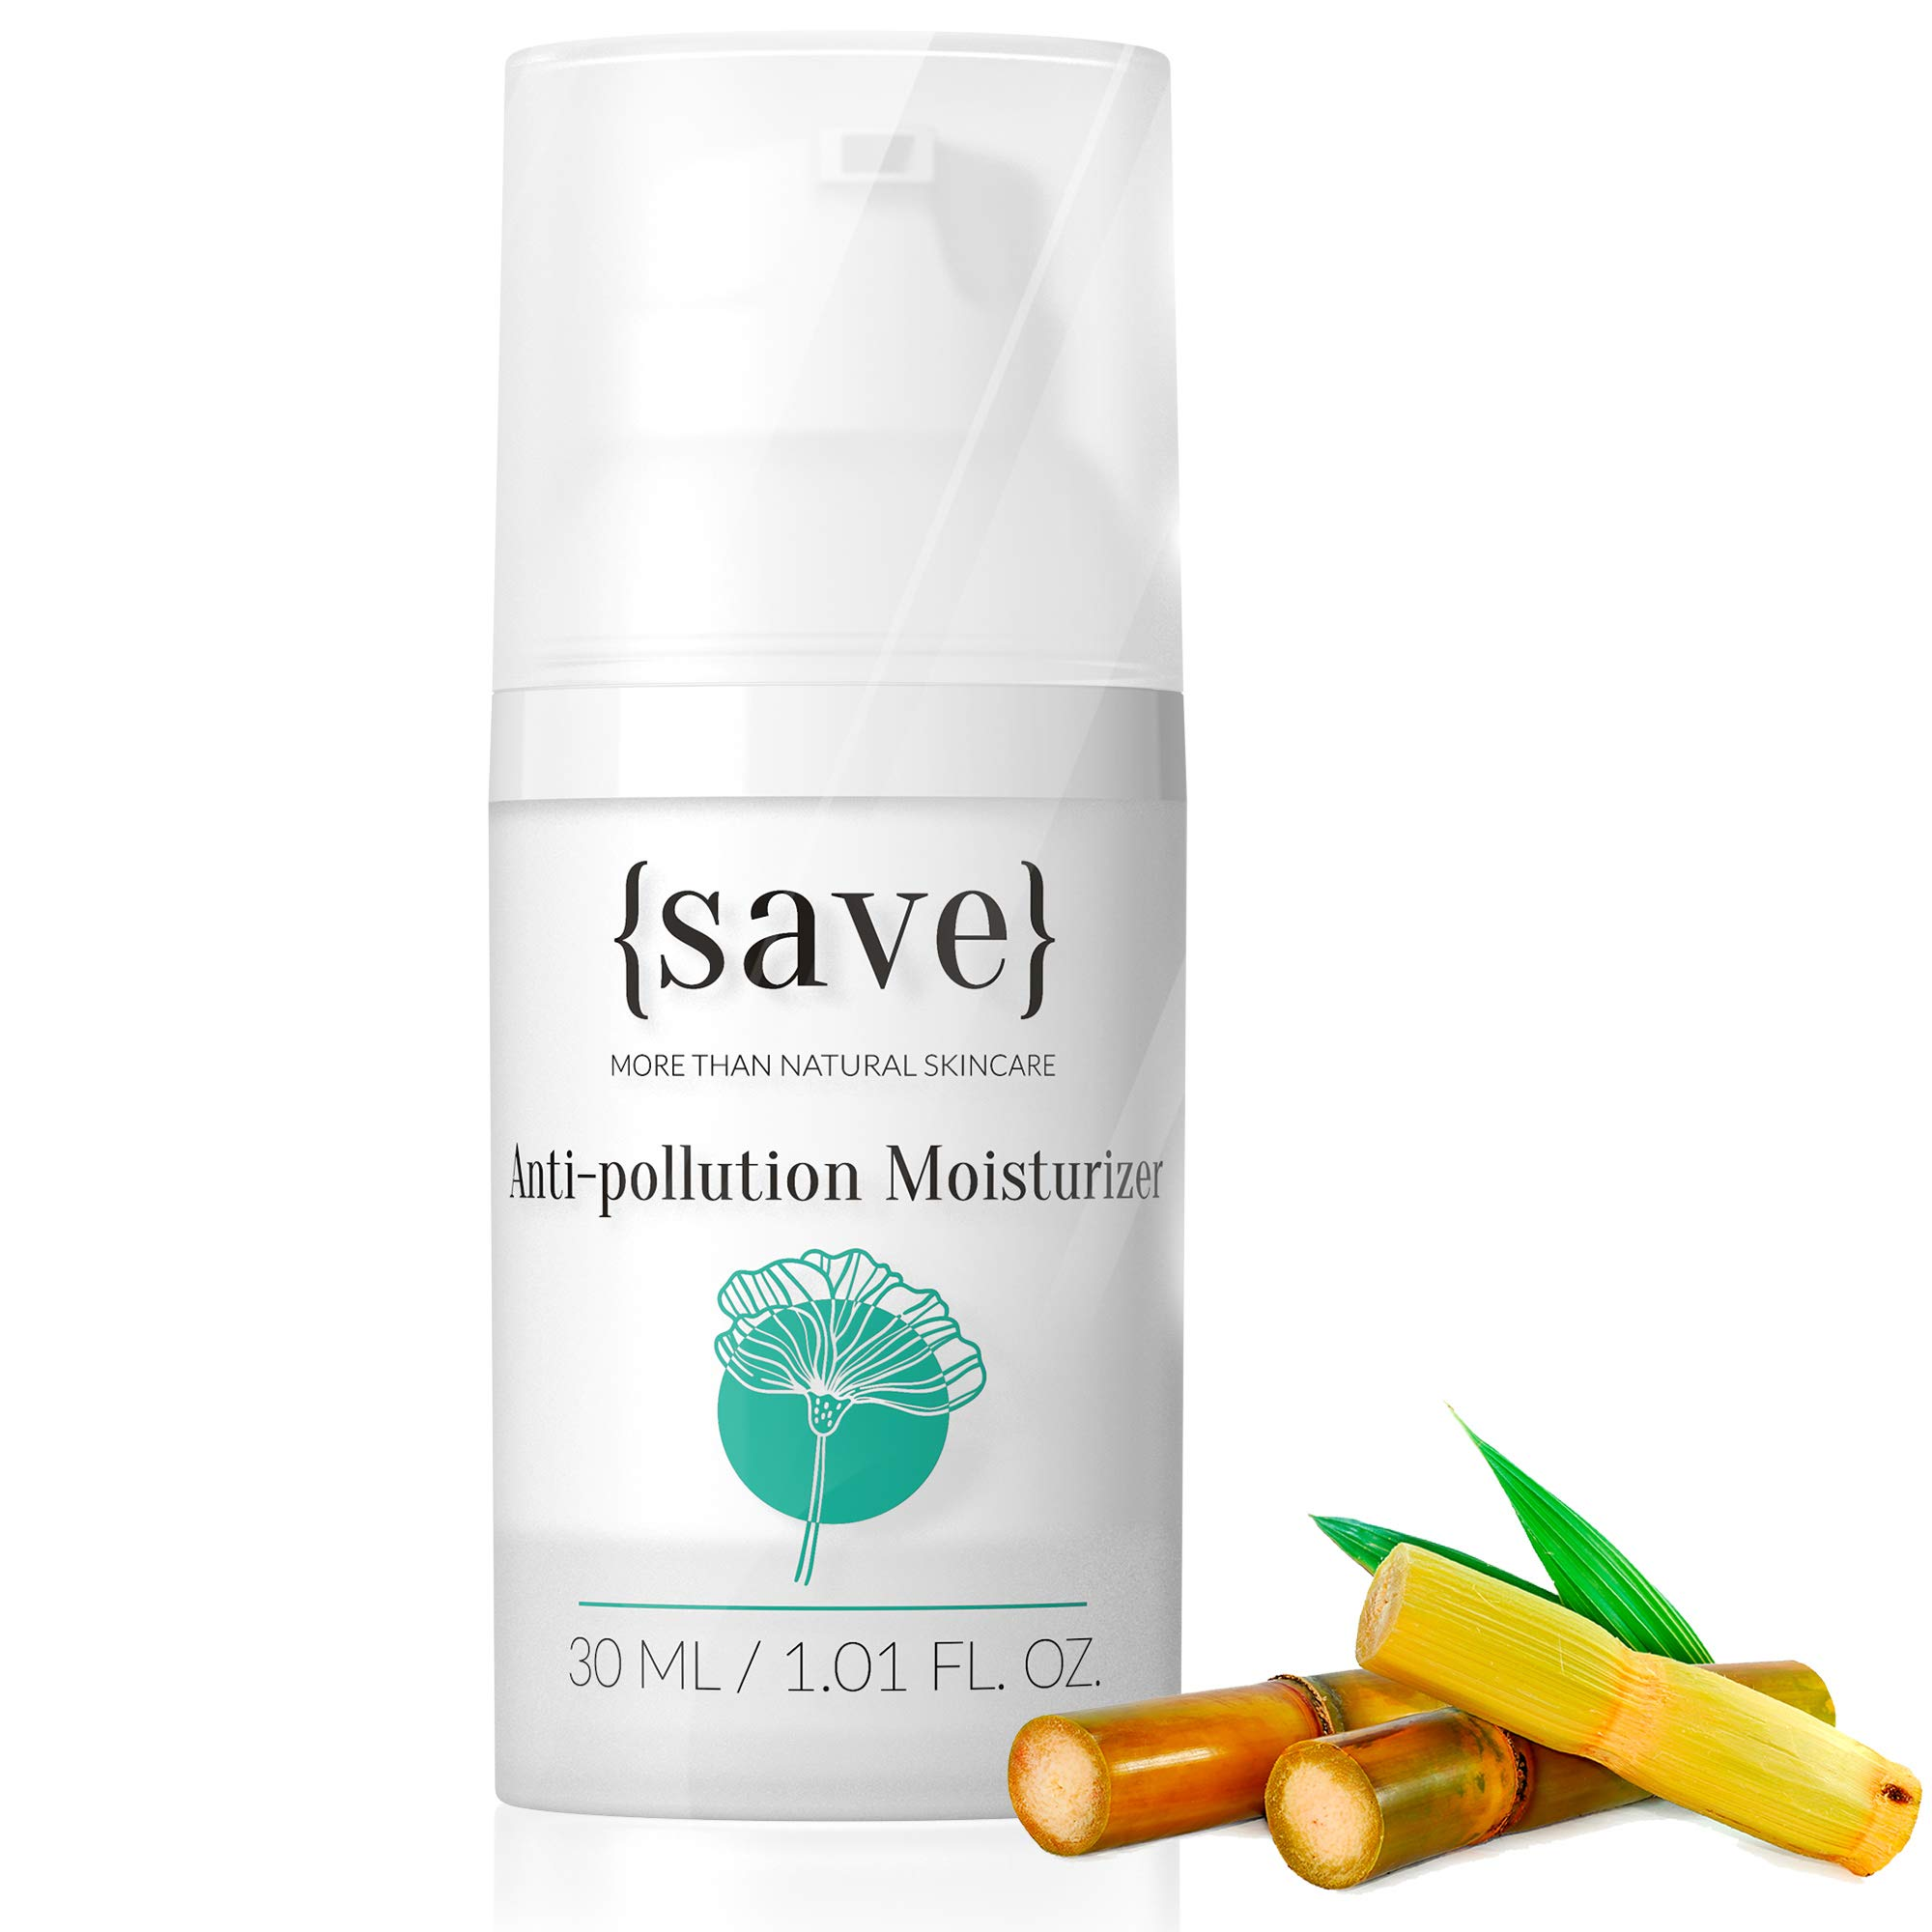 Anti-Aging Face Cream with Anti-Pollution Protection Against Skin Damage Natural Moisturizer for Sensitive Face Skin Fragrance Free 1.01 fl. oz.